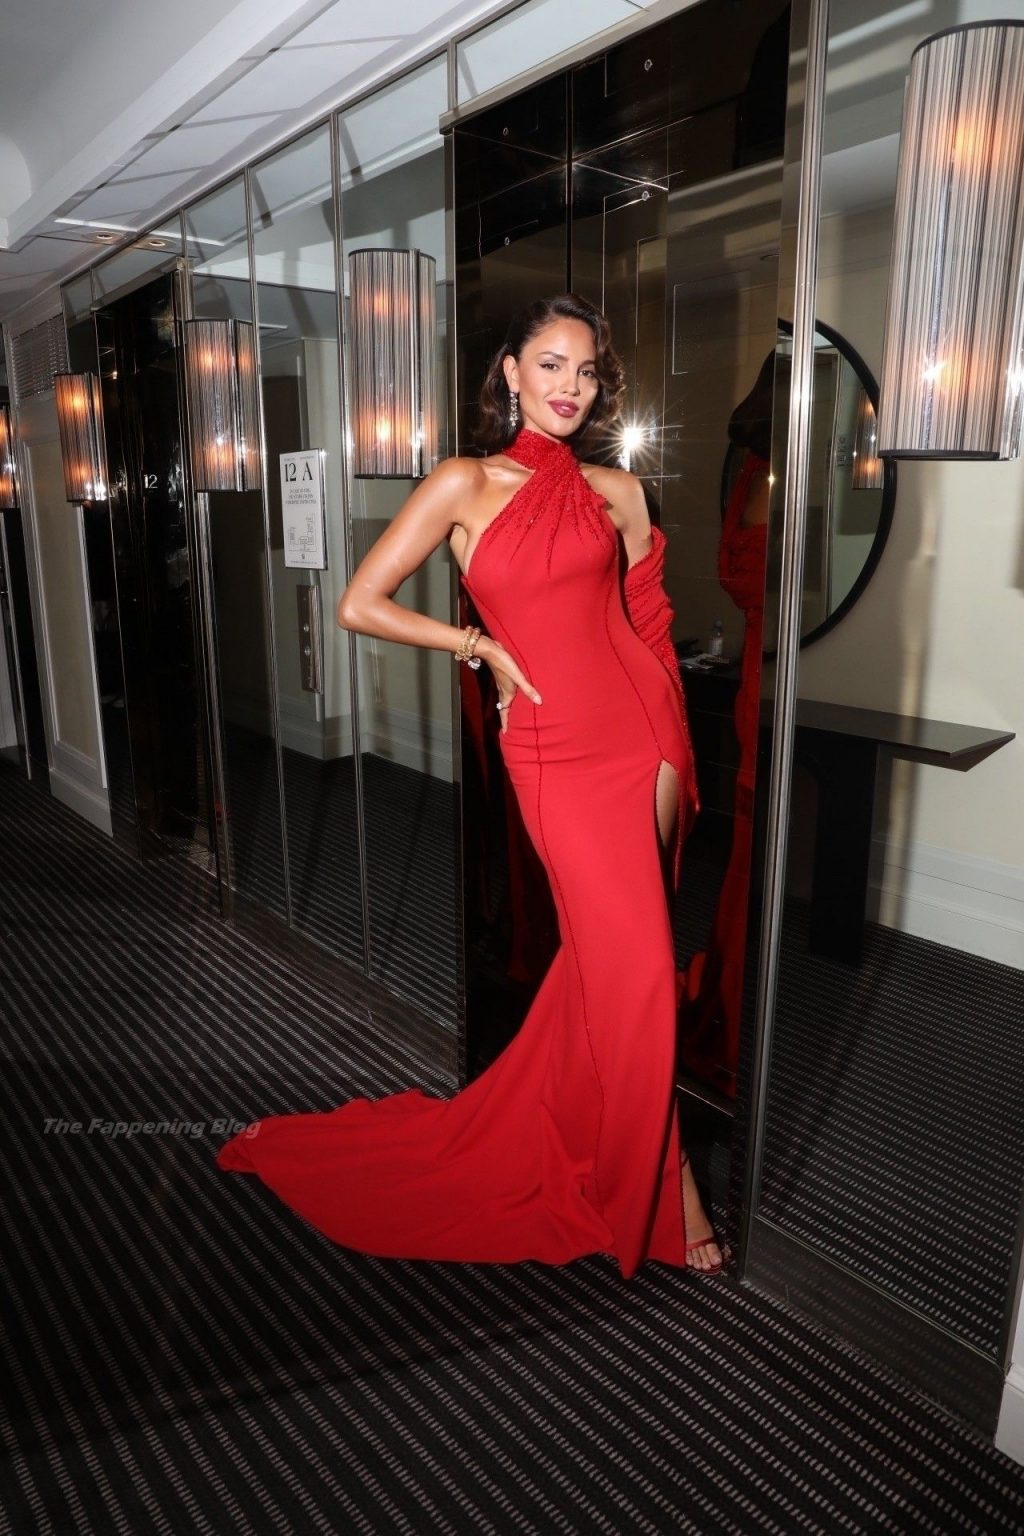 Eiza Gonzalez Pays Homage to Ava Gardner in Scarlet Versace Gown With High Thigh Slit at Met Gala (100 Photos) [Updated]